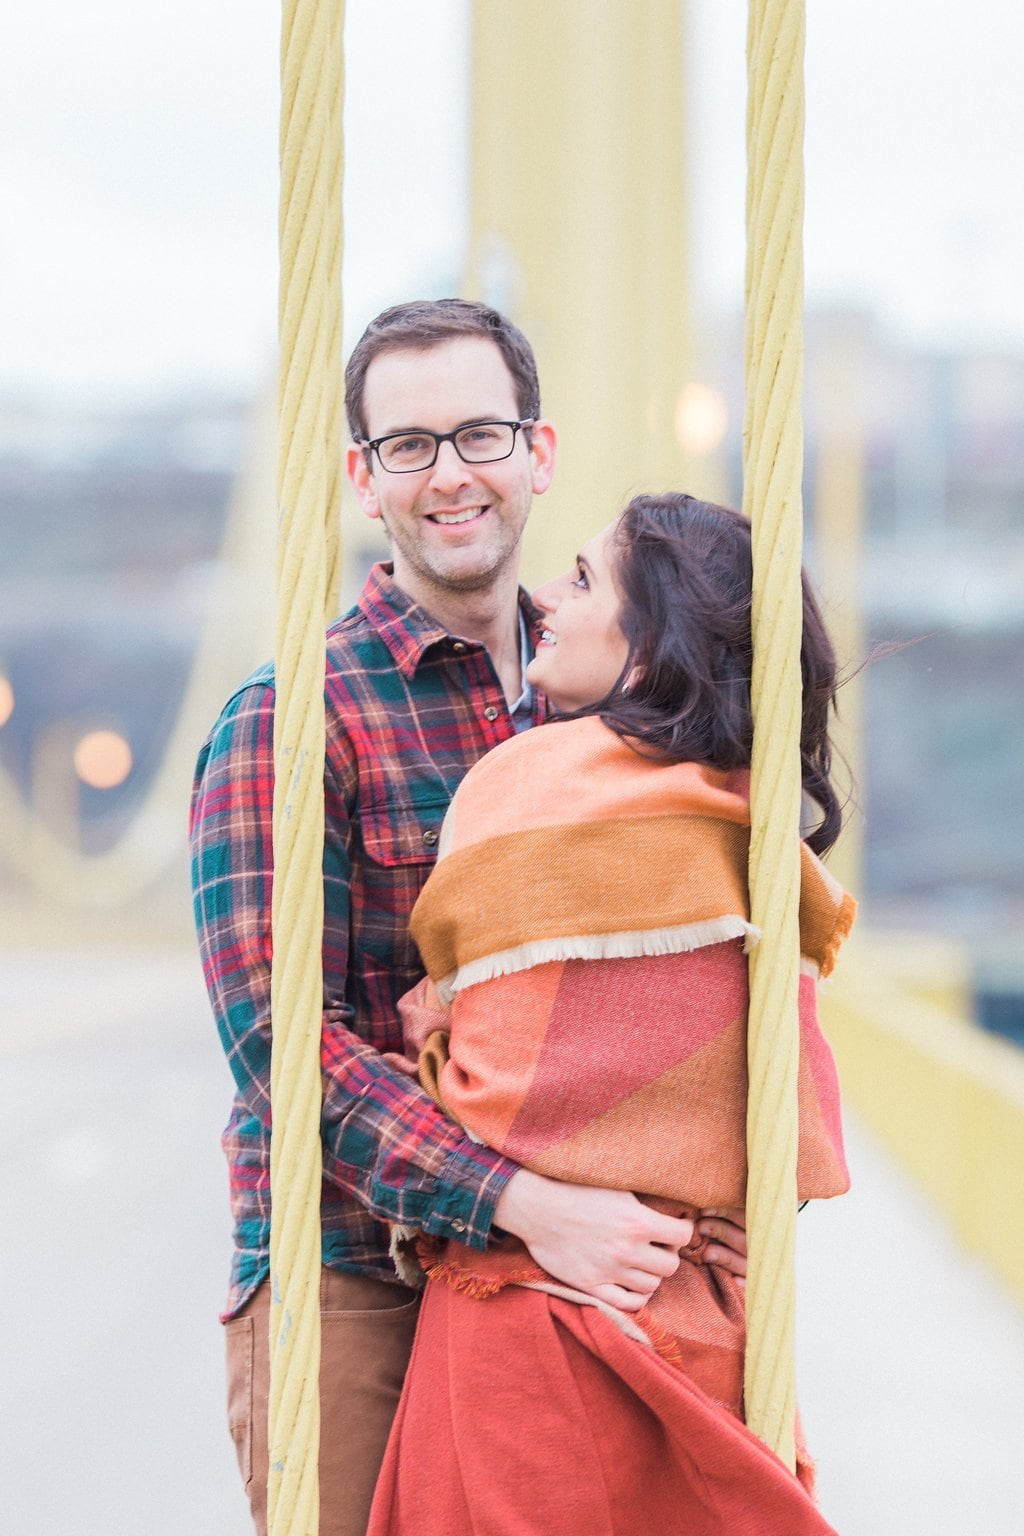 southside-mellonpark-engagement-session-pittsburgh-wedding-photography-laurenreneedesigns